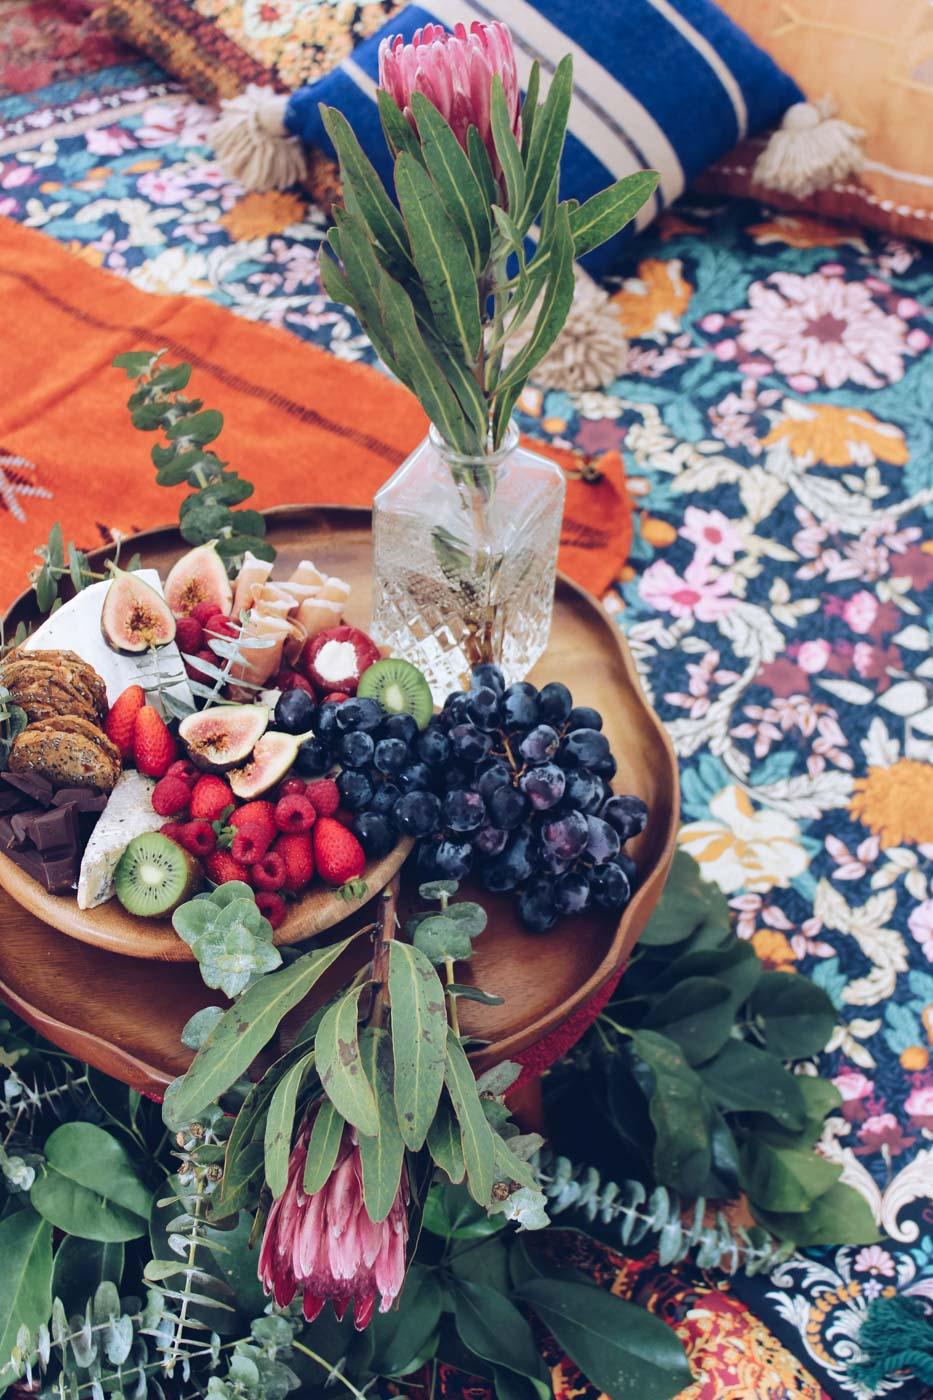 the_Collection_co_grazing_table_cairns_weddings_catering_grazing_platter_hire_pop_up_picnic_bell_tent_event_hire_styling-5-2.jpg